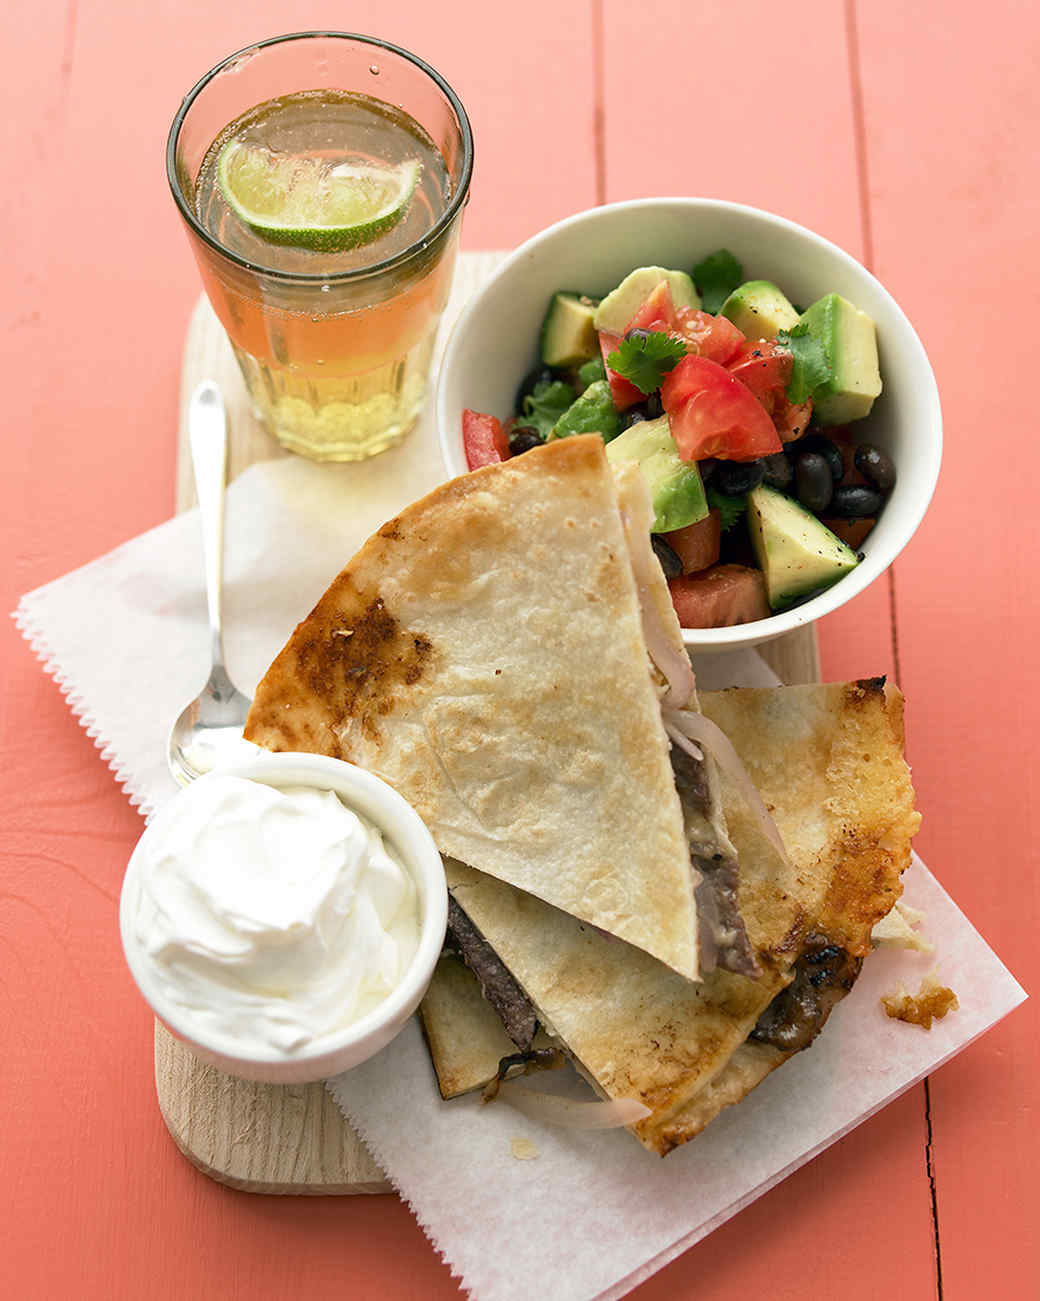 edf_jun06_din_quesadillas.jpg